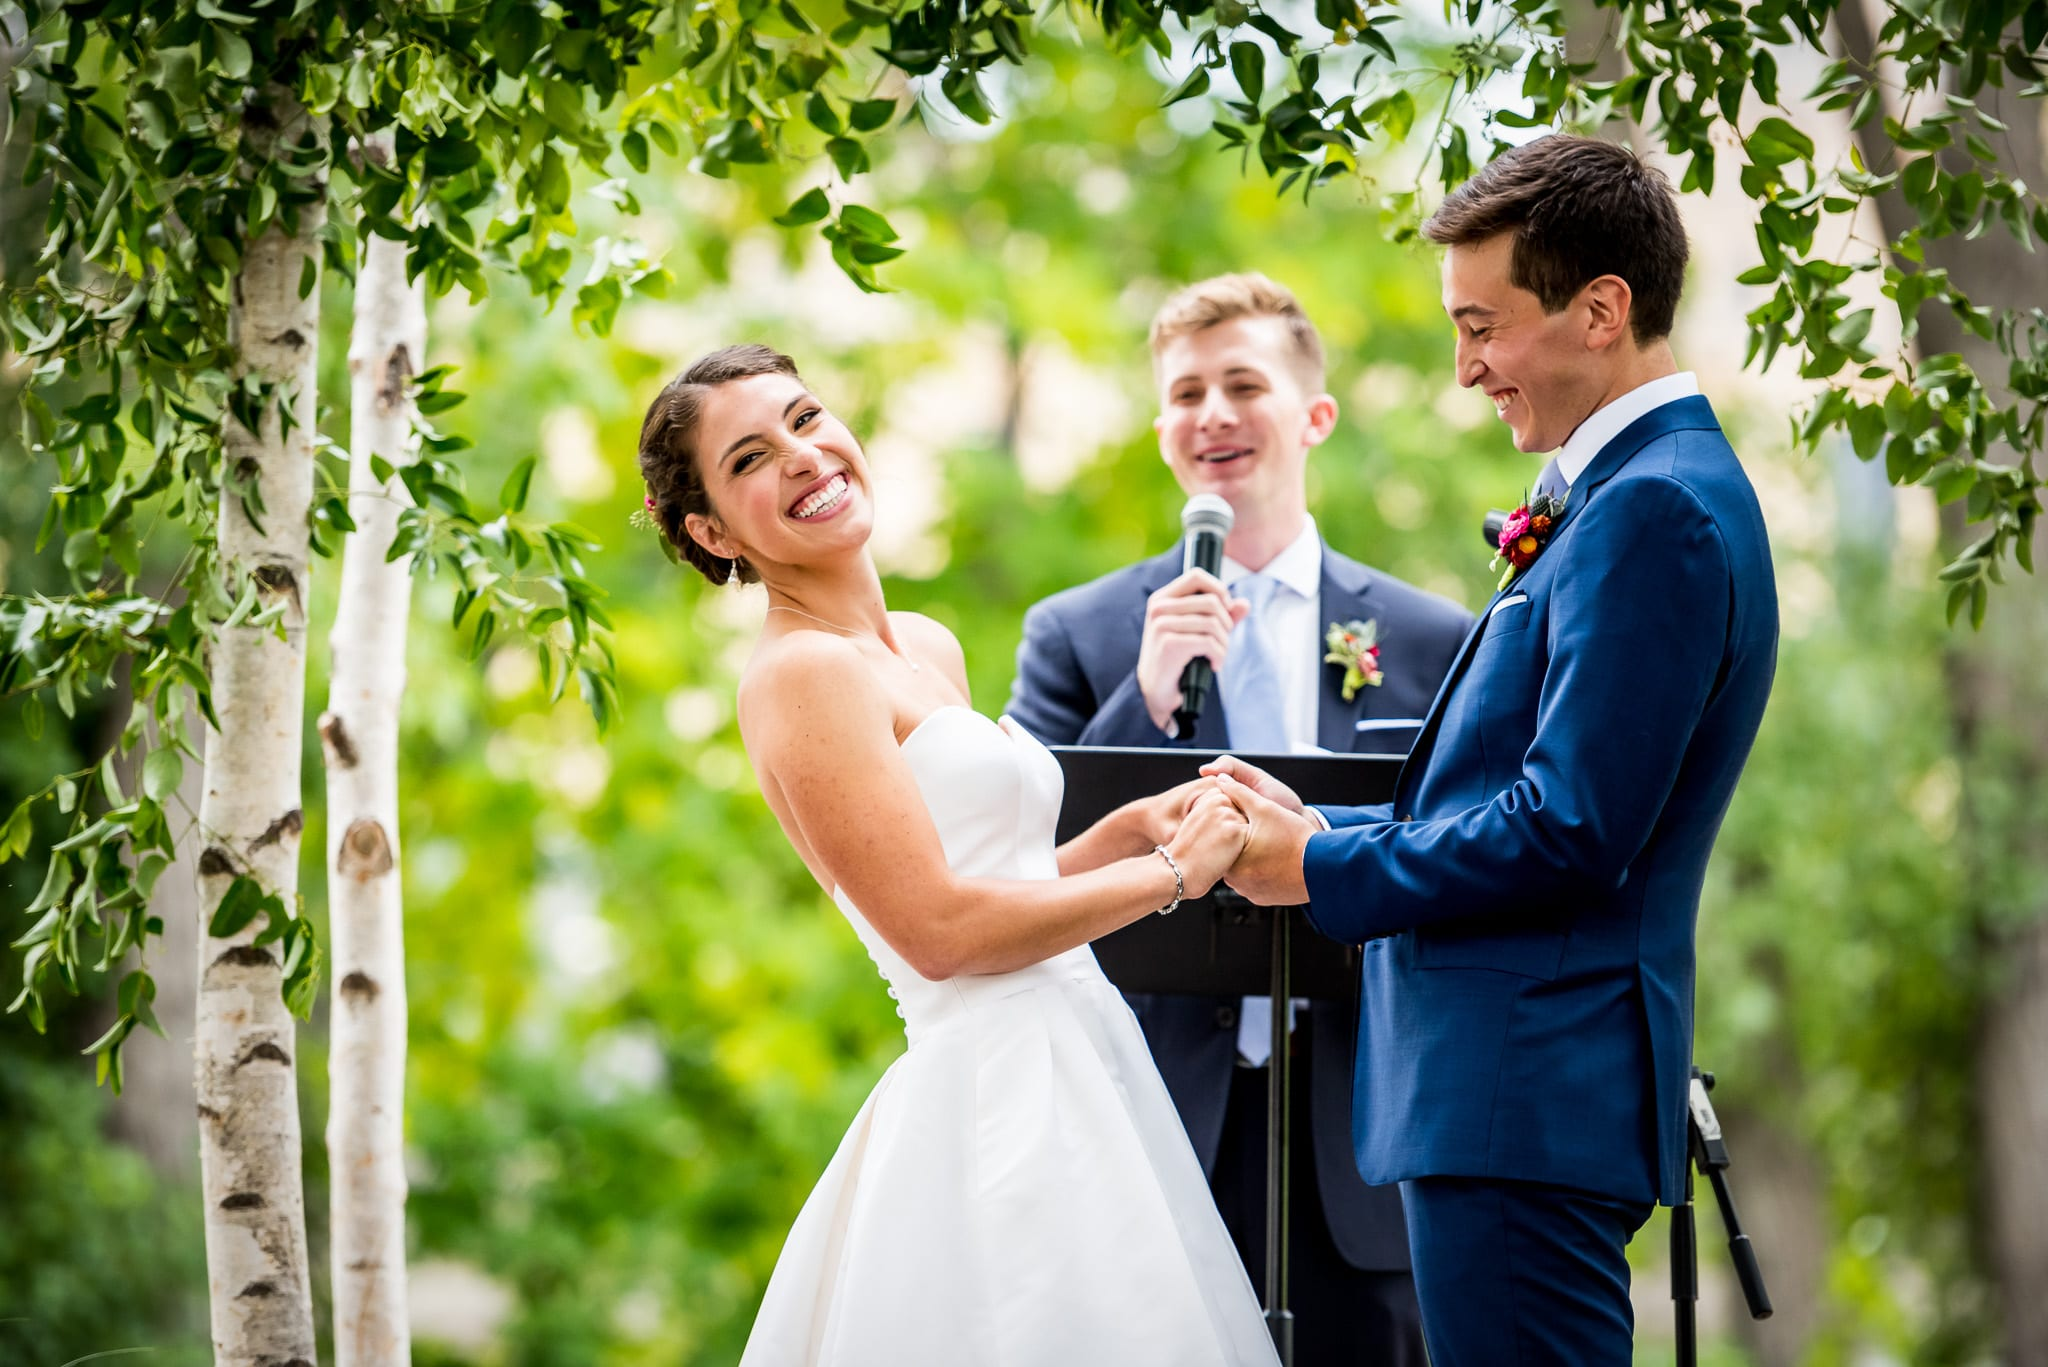 Bride up at the alter laughs out loud during her vows, while holding her grooms hands at their Minneapolis wedding ceremony